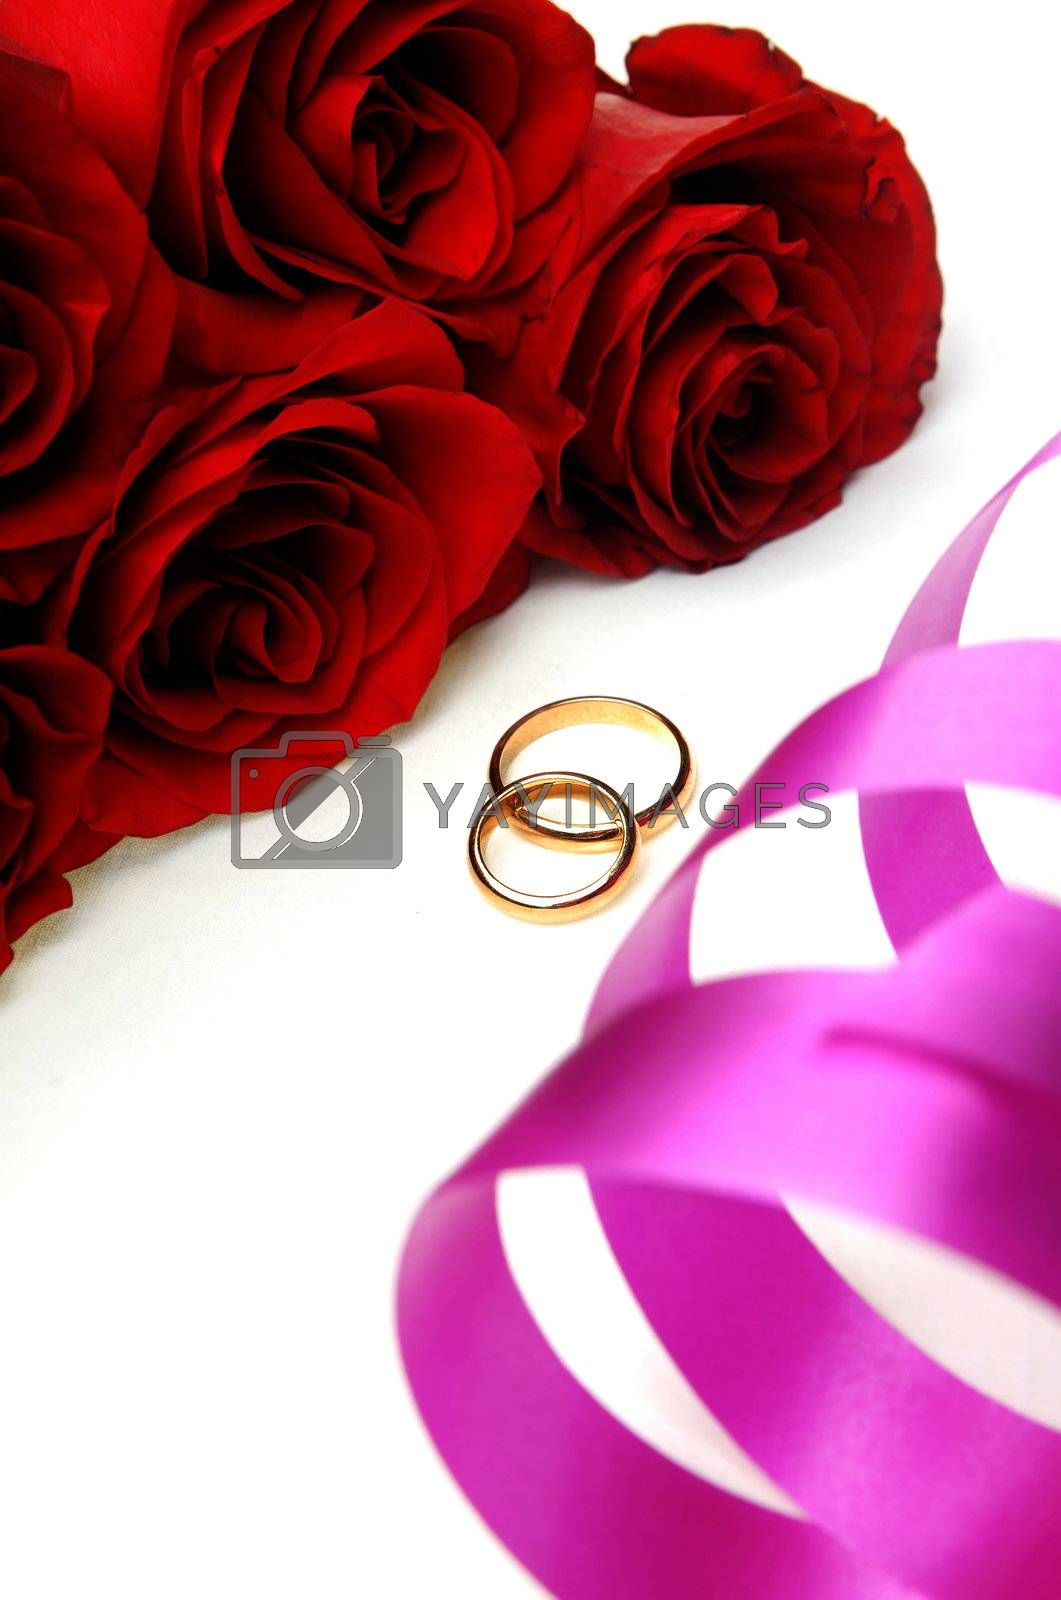 Bunch of flowers and wedding rings with ribbon